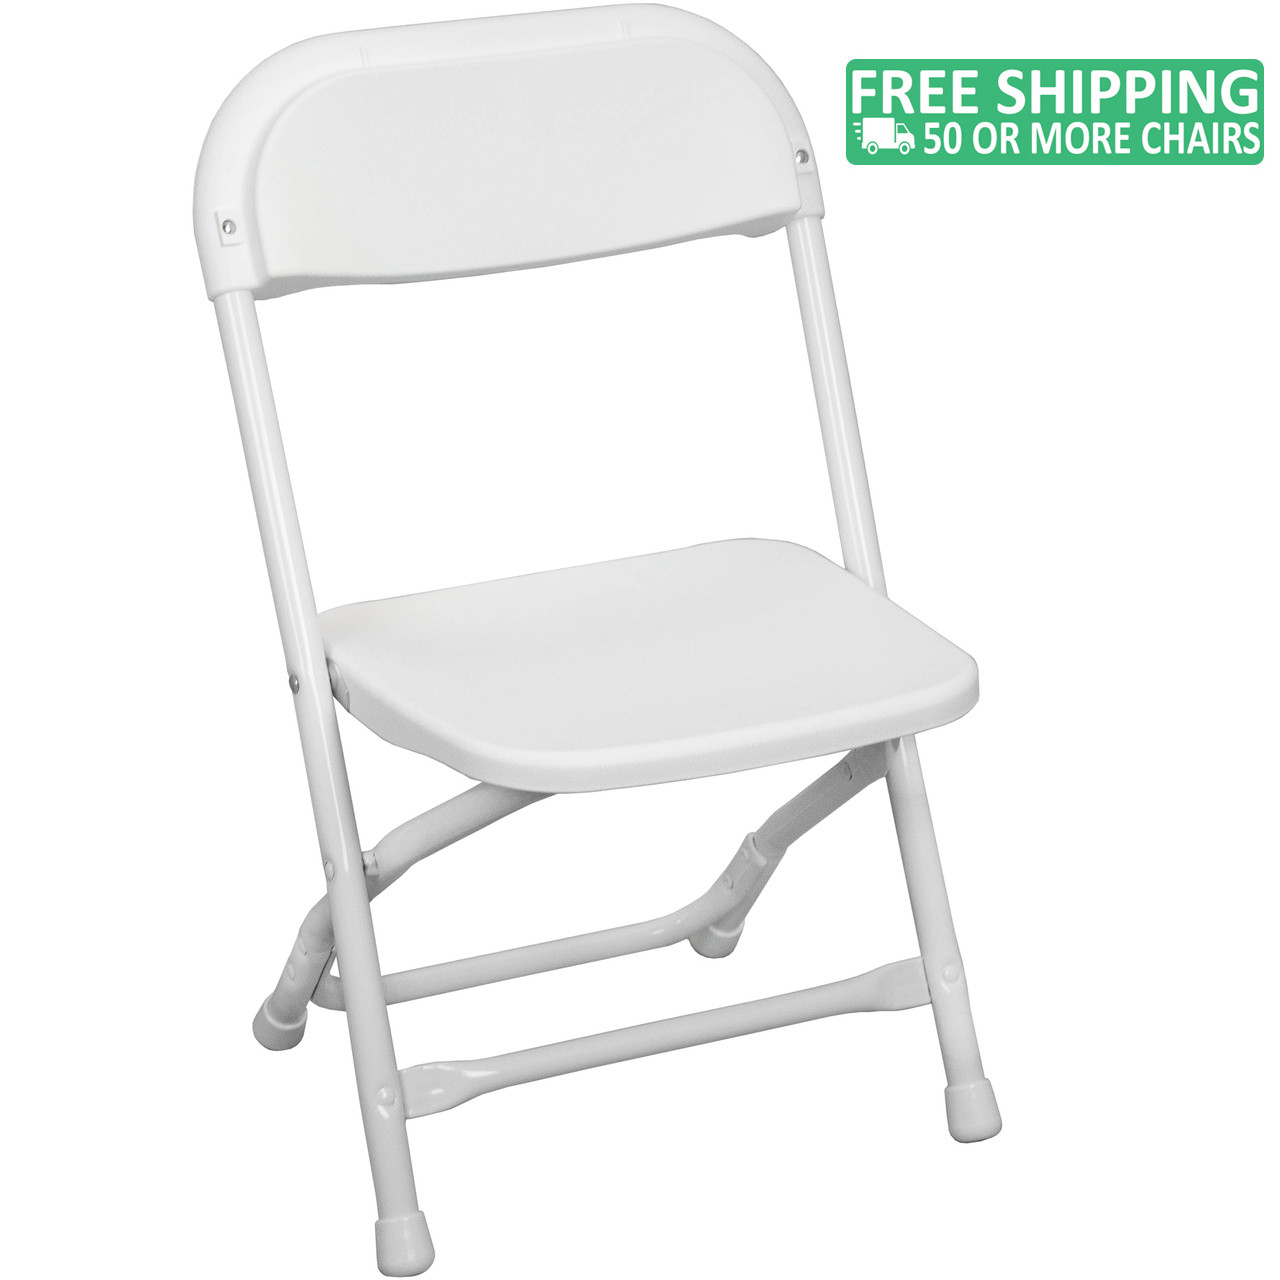 Plastic Kids Chairs Advantage Kids White Plastic Folding Chair Ppfckid White